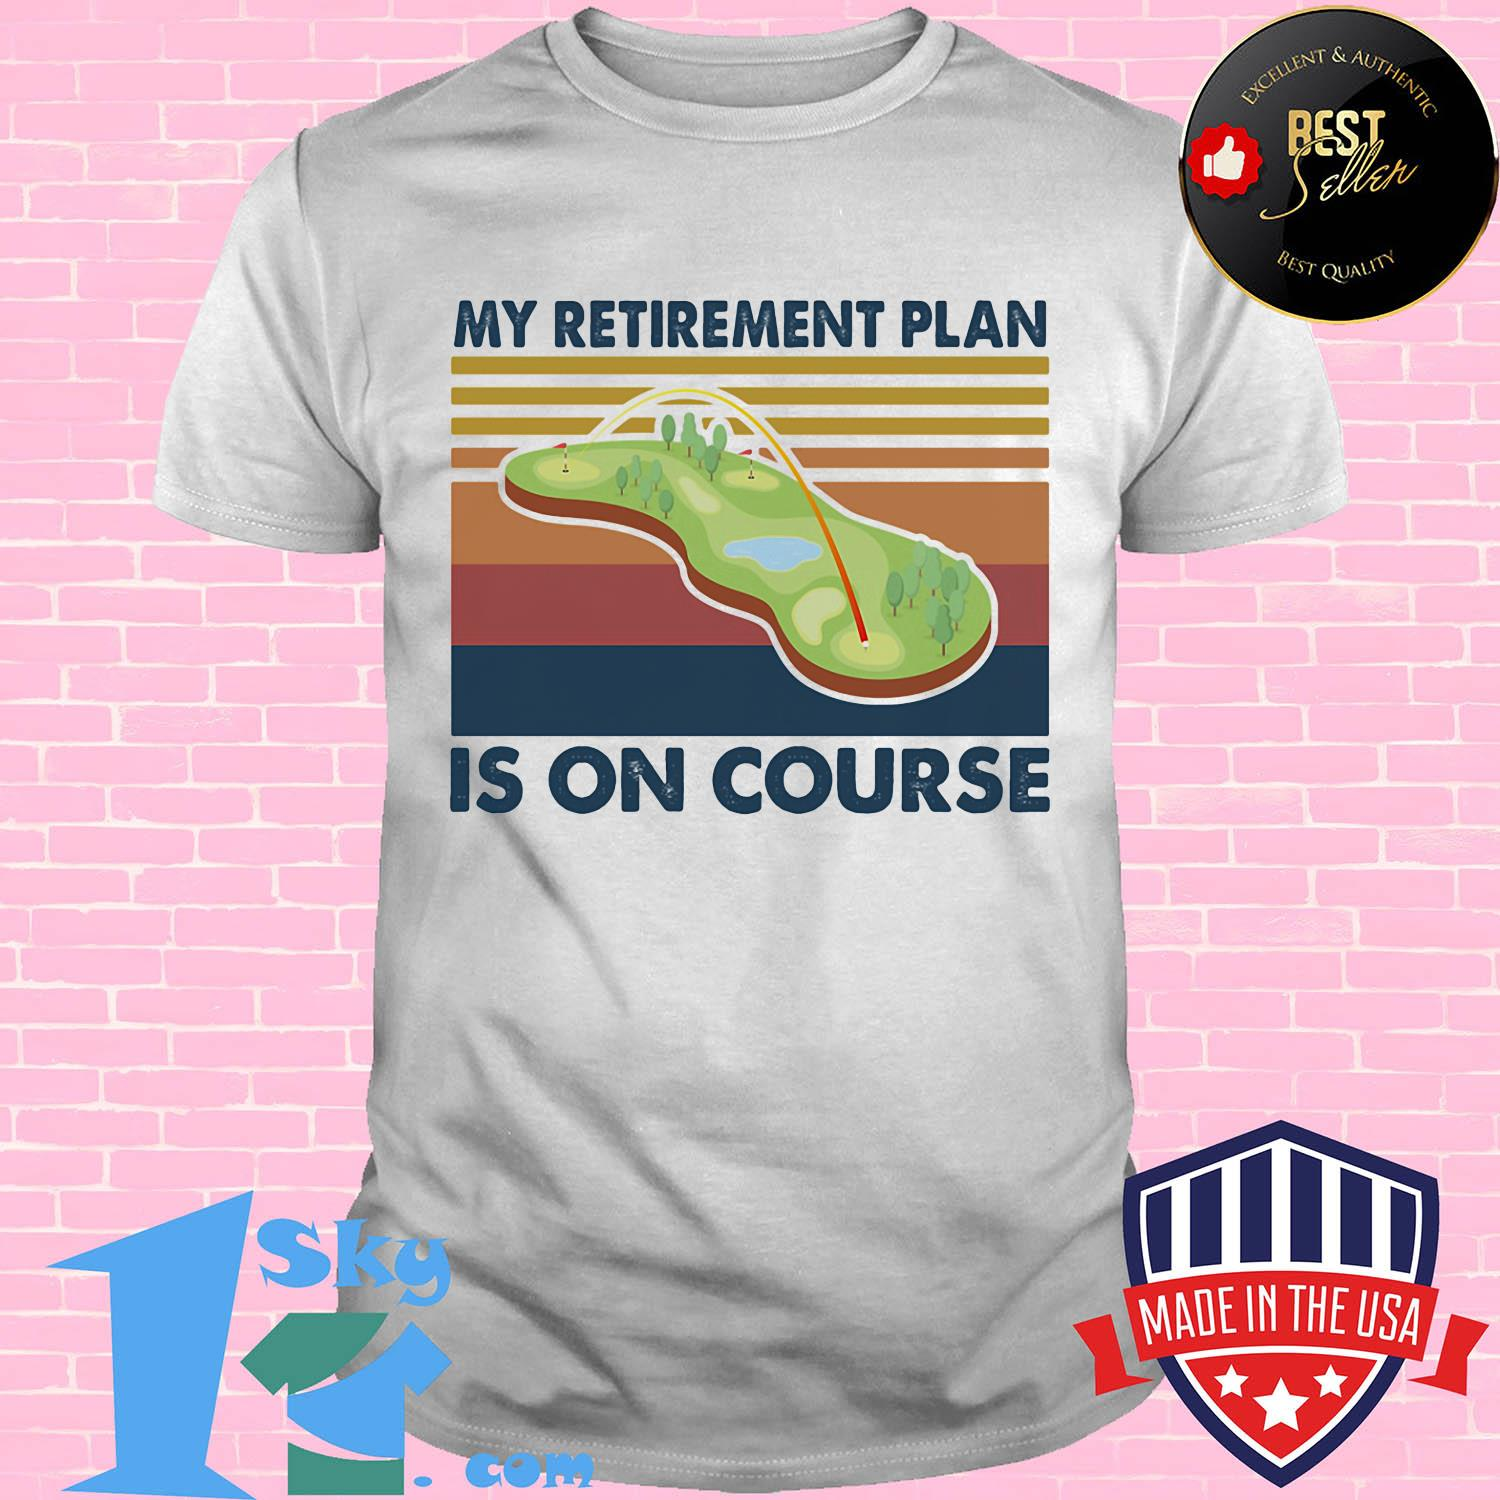 d819b803 golf my retirement plan is on course vintage shirt unisex - Shop trending - We offer all trend shirts - 1SkyTee